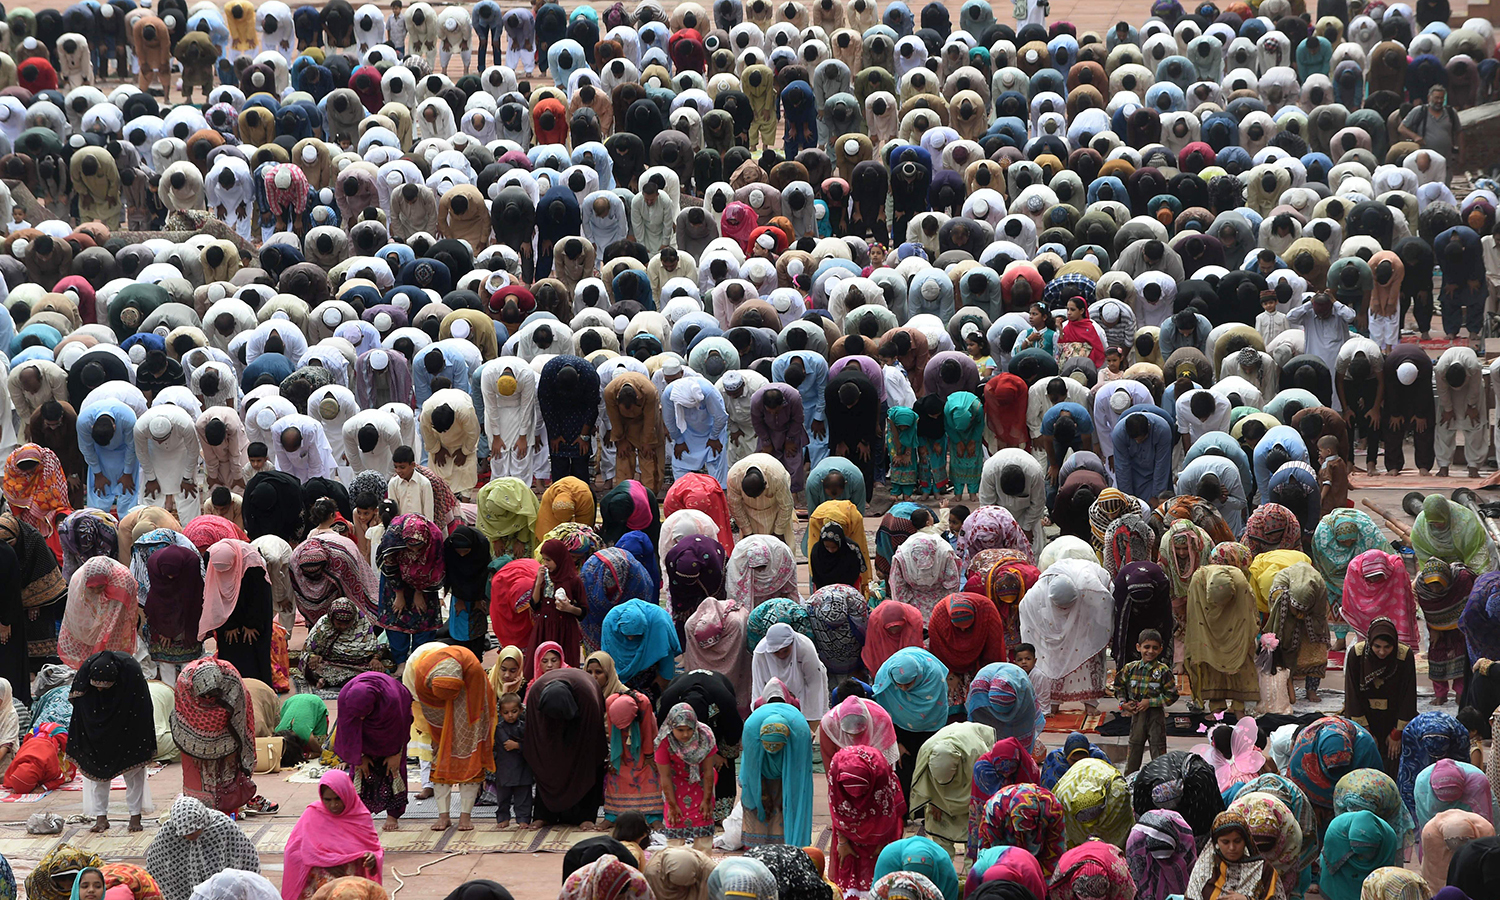 LAHORE: Men and women offer Eidul Fitr prayers at the Badshahi Masjid on Wednesday morning. —AFP/Arif Ali